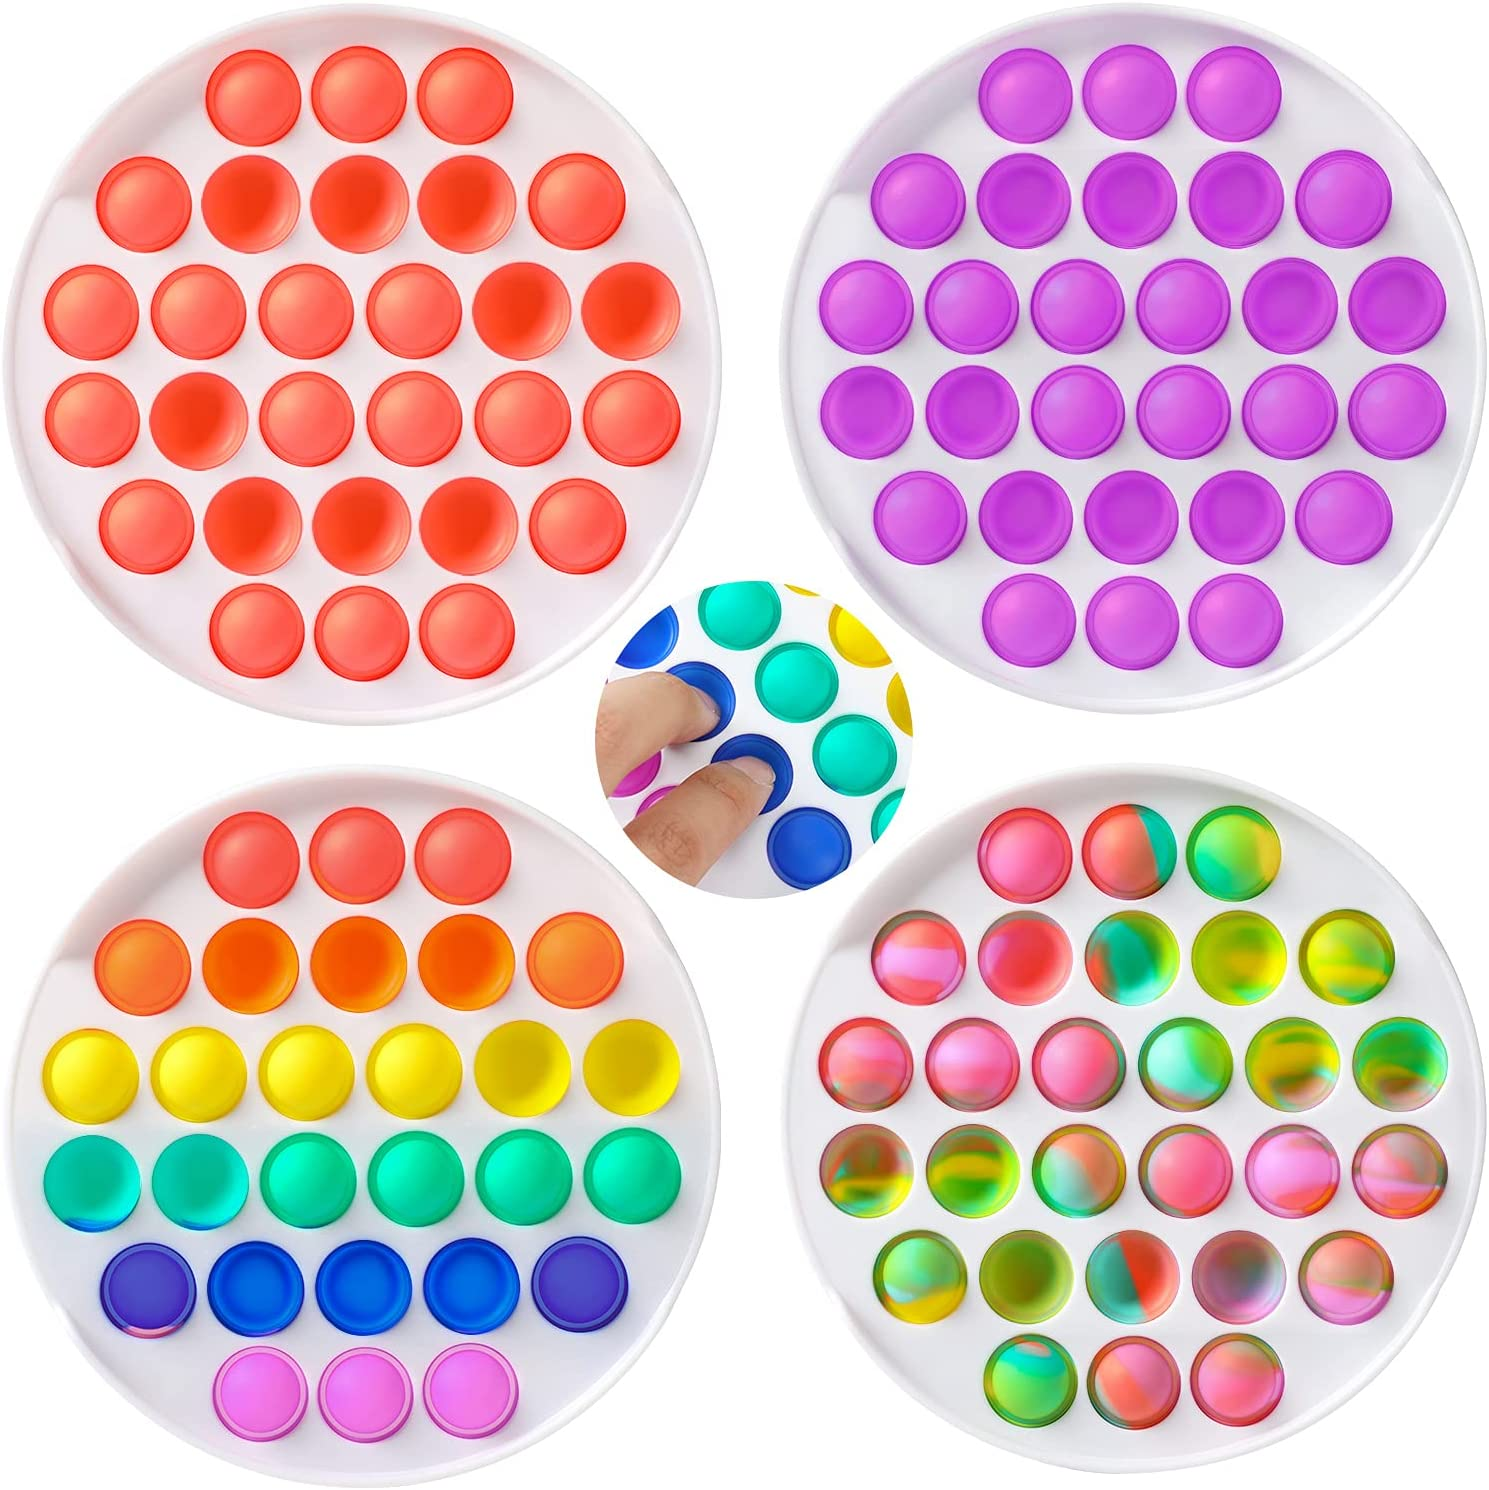 ENNO Push Pop Fidget Toy, Pop Push Bubble Sensory Toy for Autism, Food Grade Silicone Hips Stress Reliever Toy Set of 4, Anti-Anxiety Dimple Squeeze Toy for Adults Kids Gift(Round Multicolor)